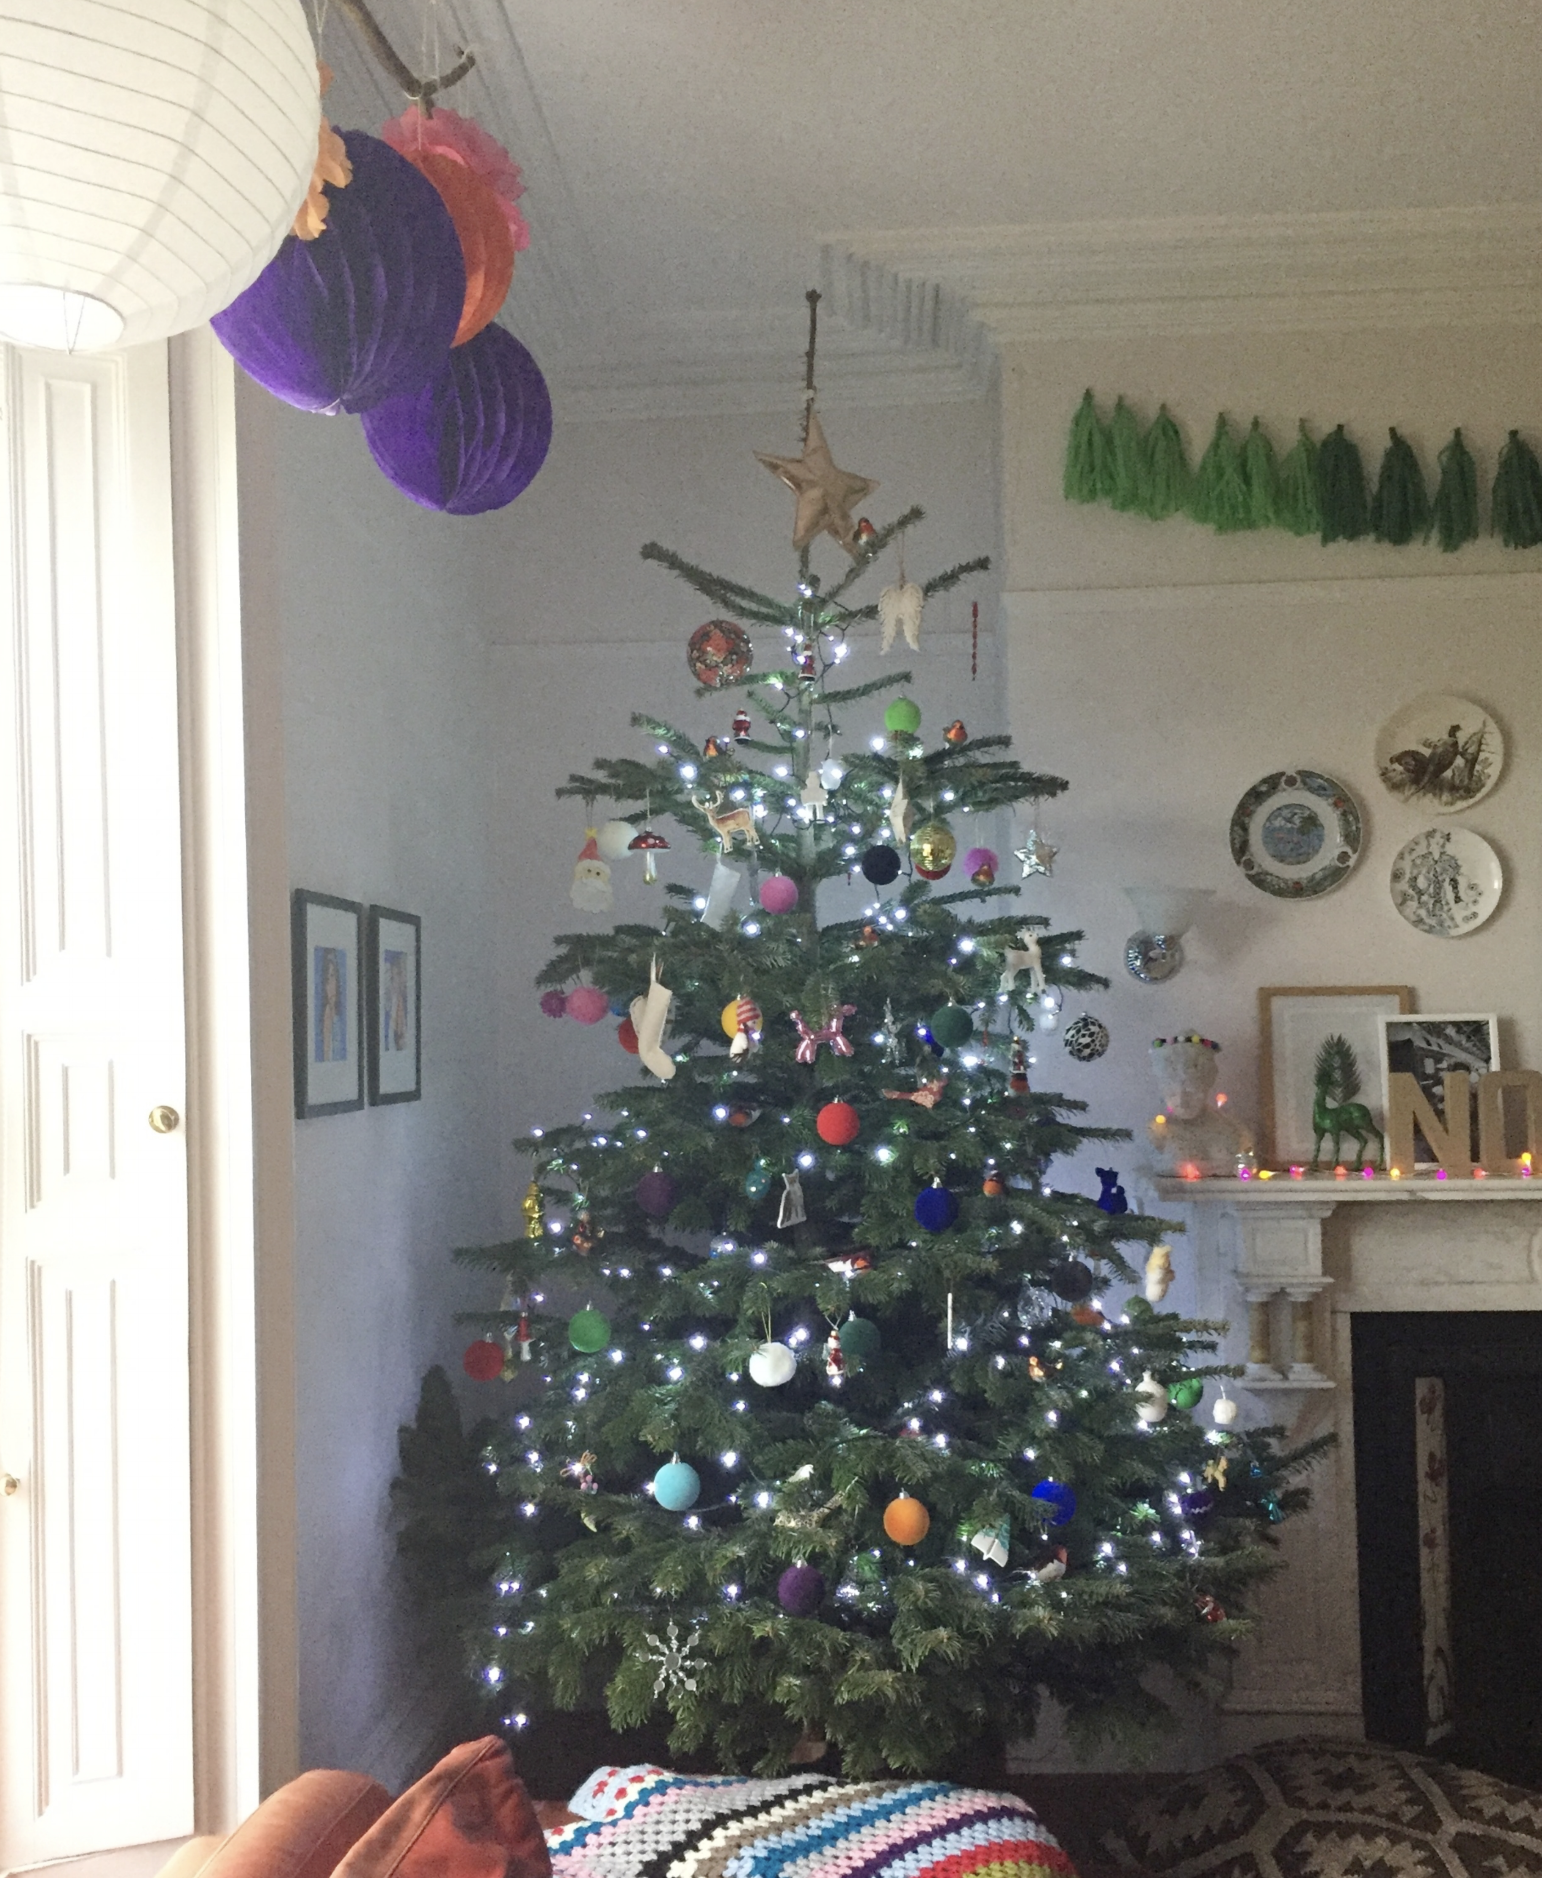 My tree last year. So big the boughs were squashed against the wall and poor lighting distribution. Sub standard, quite frankly.